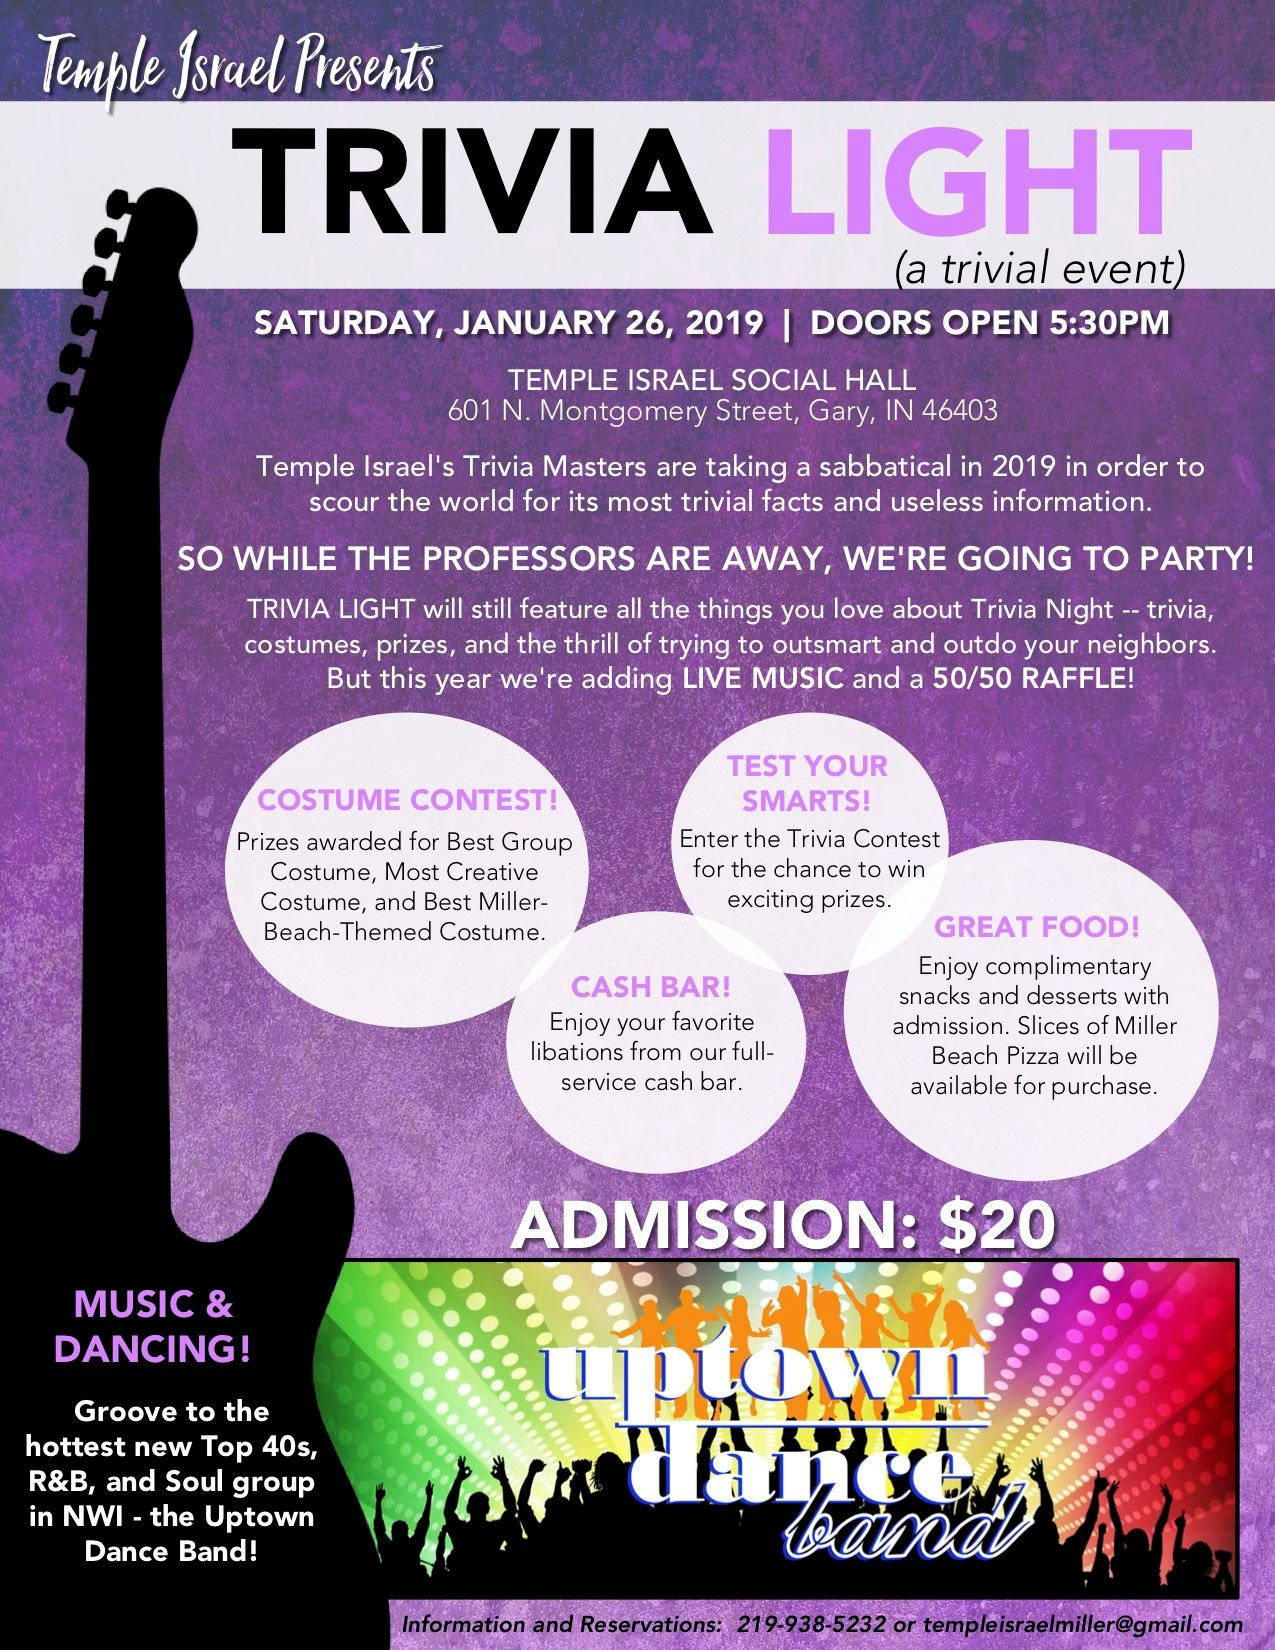 Trivia Light is January 26th, 2019.  Doors open at 5:30 PM